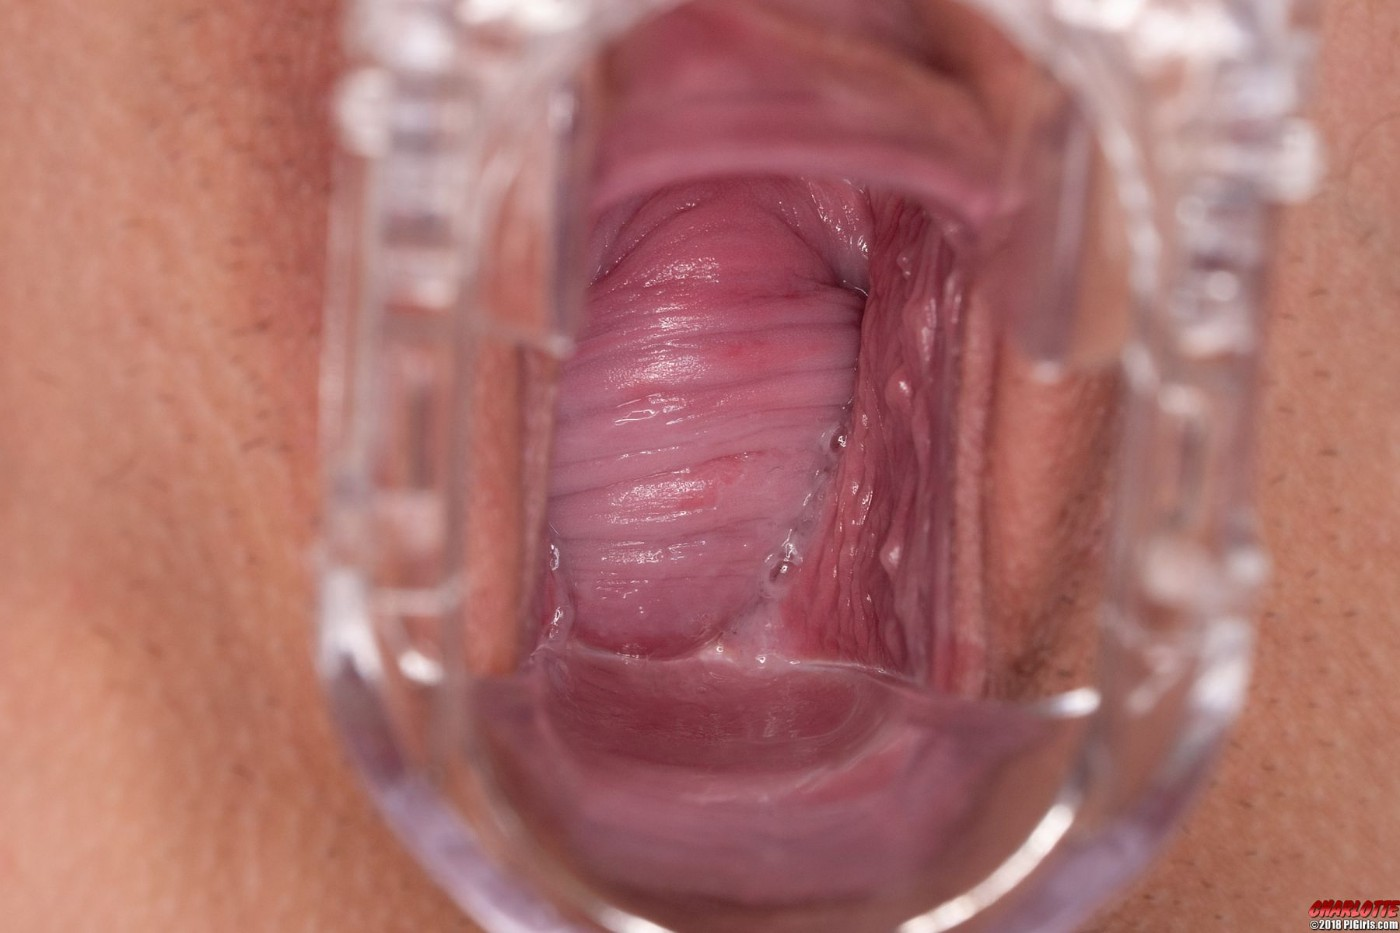 Normal inside of vagina